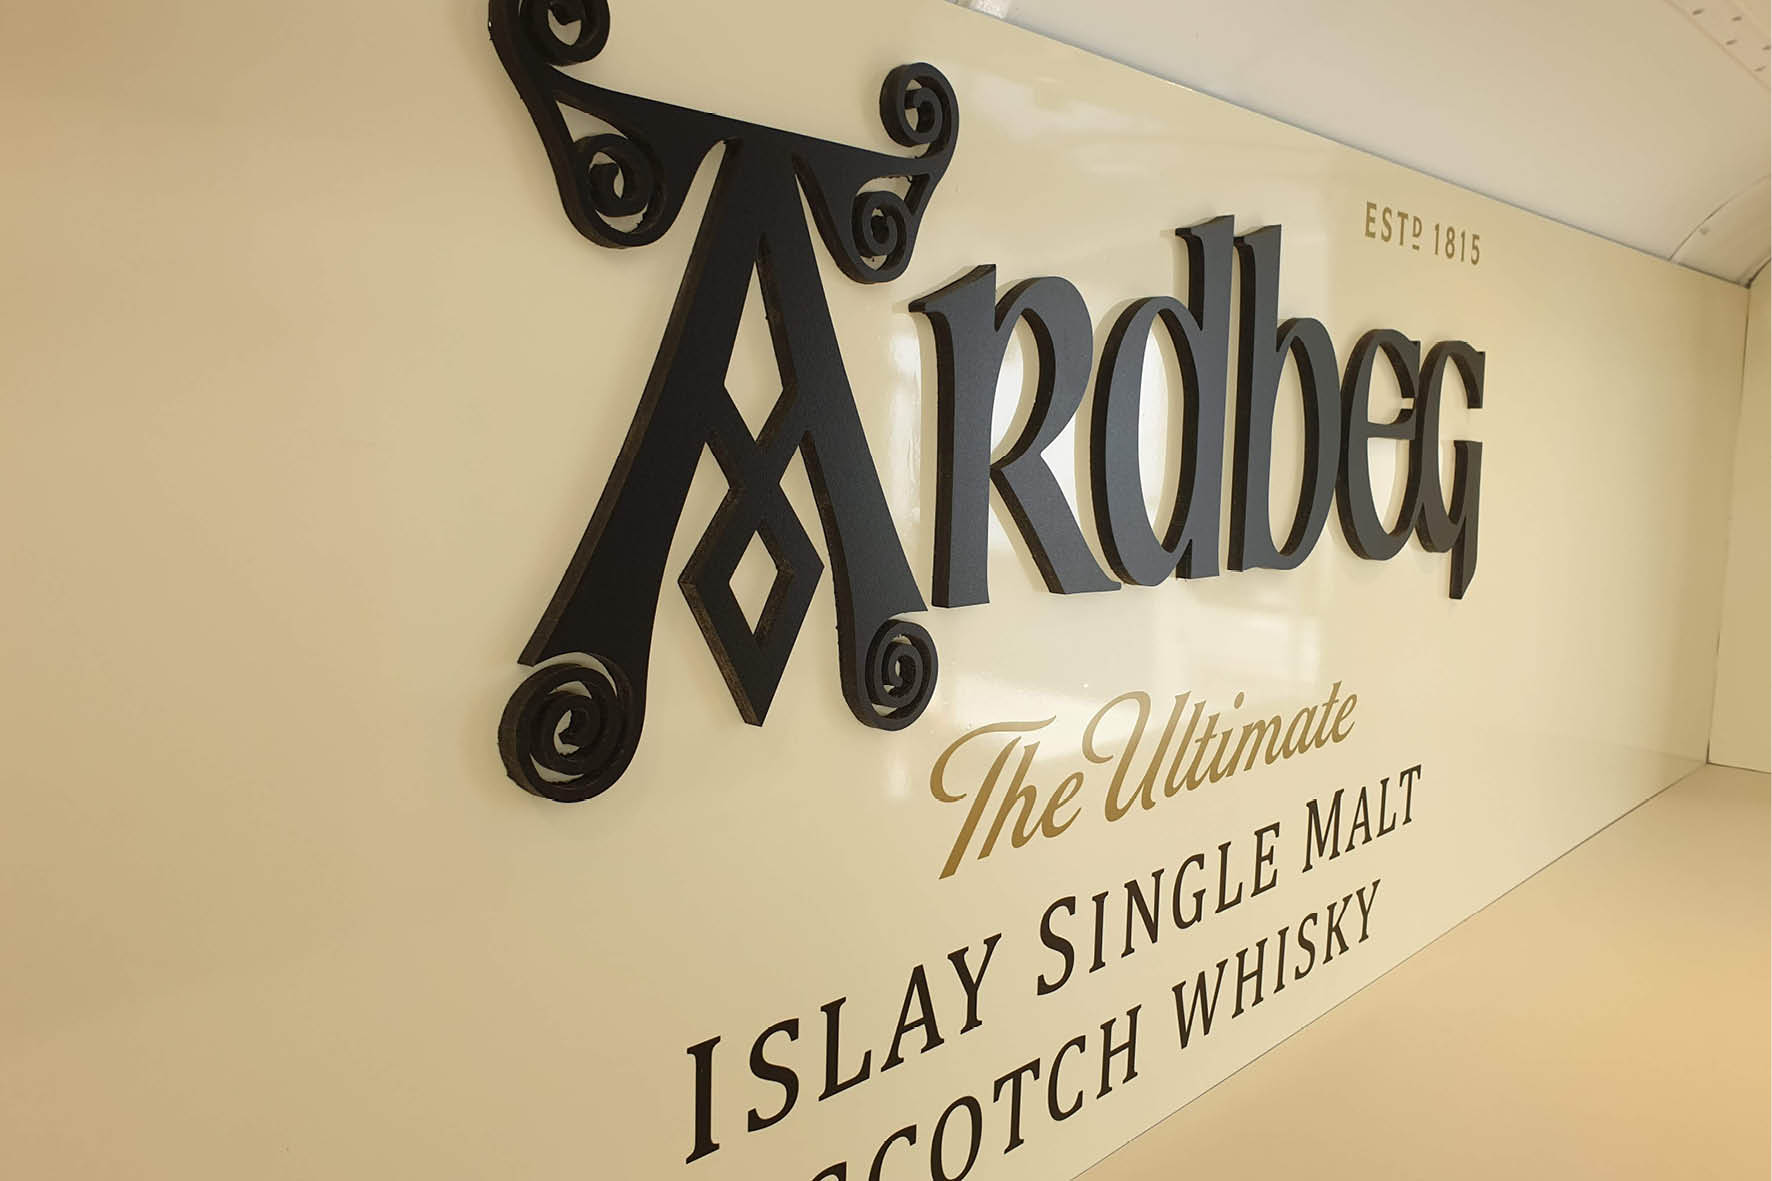 bus_business_2019_ardbeg_10.jpg